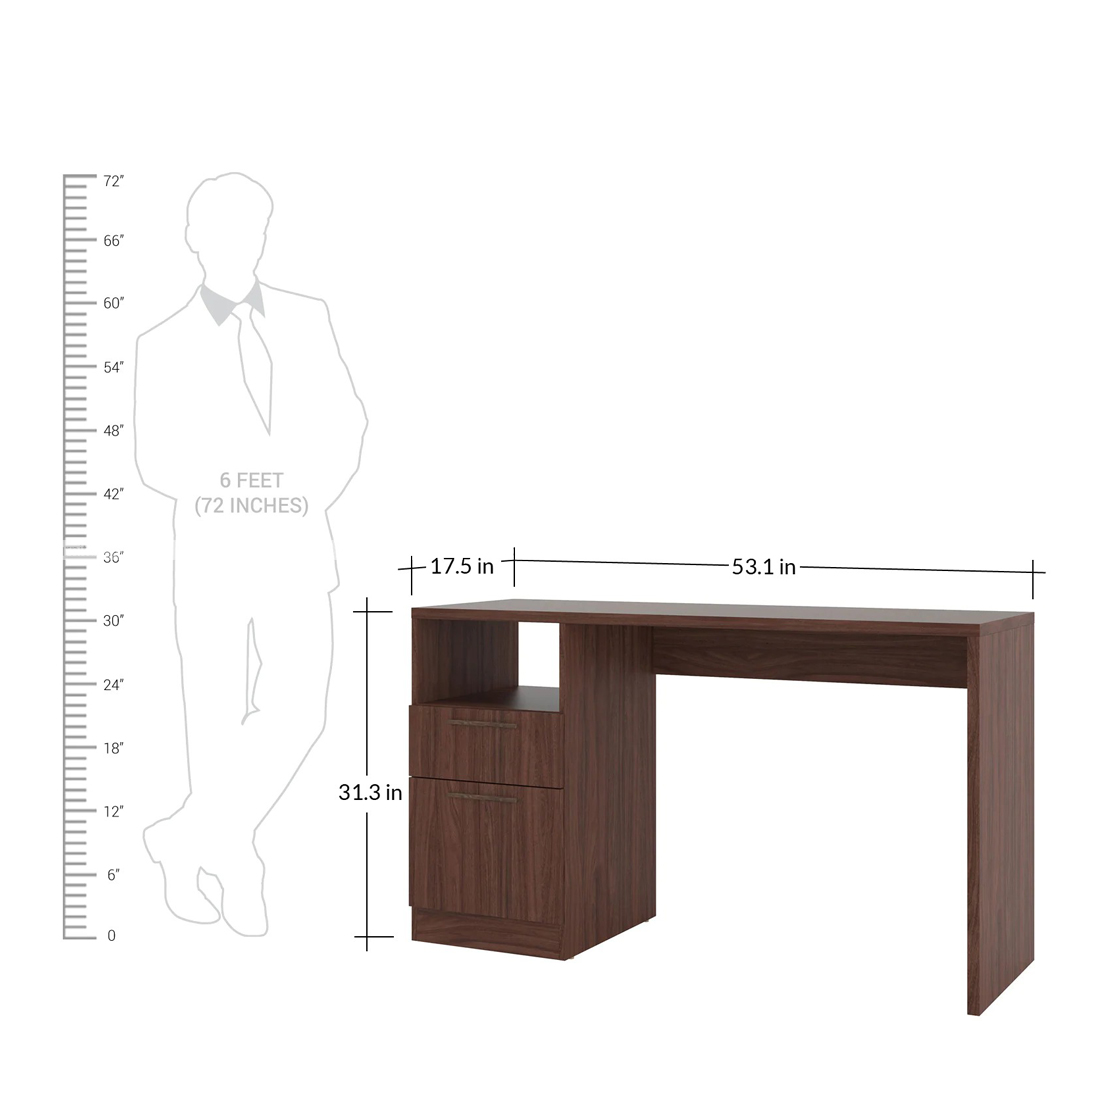 Chandra Furniture Emica Study Table With Drawer & Cabinet In Nut Brown Finish